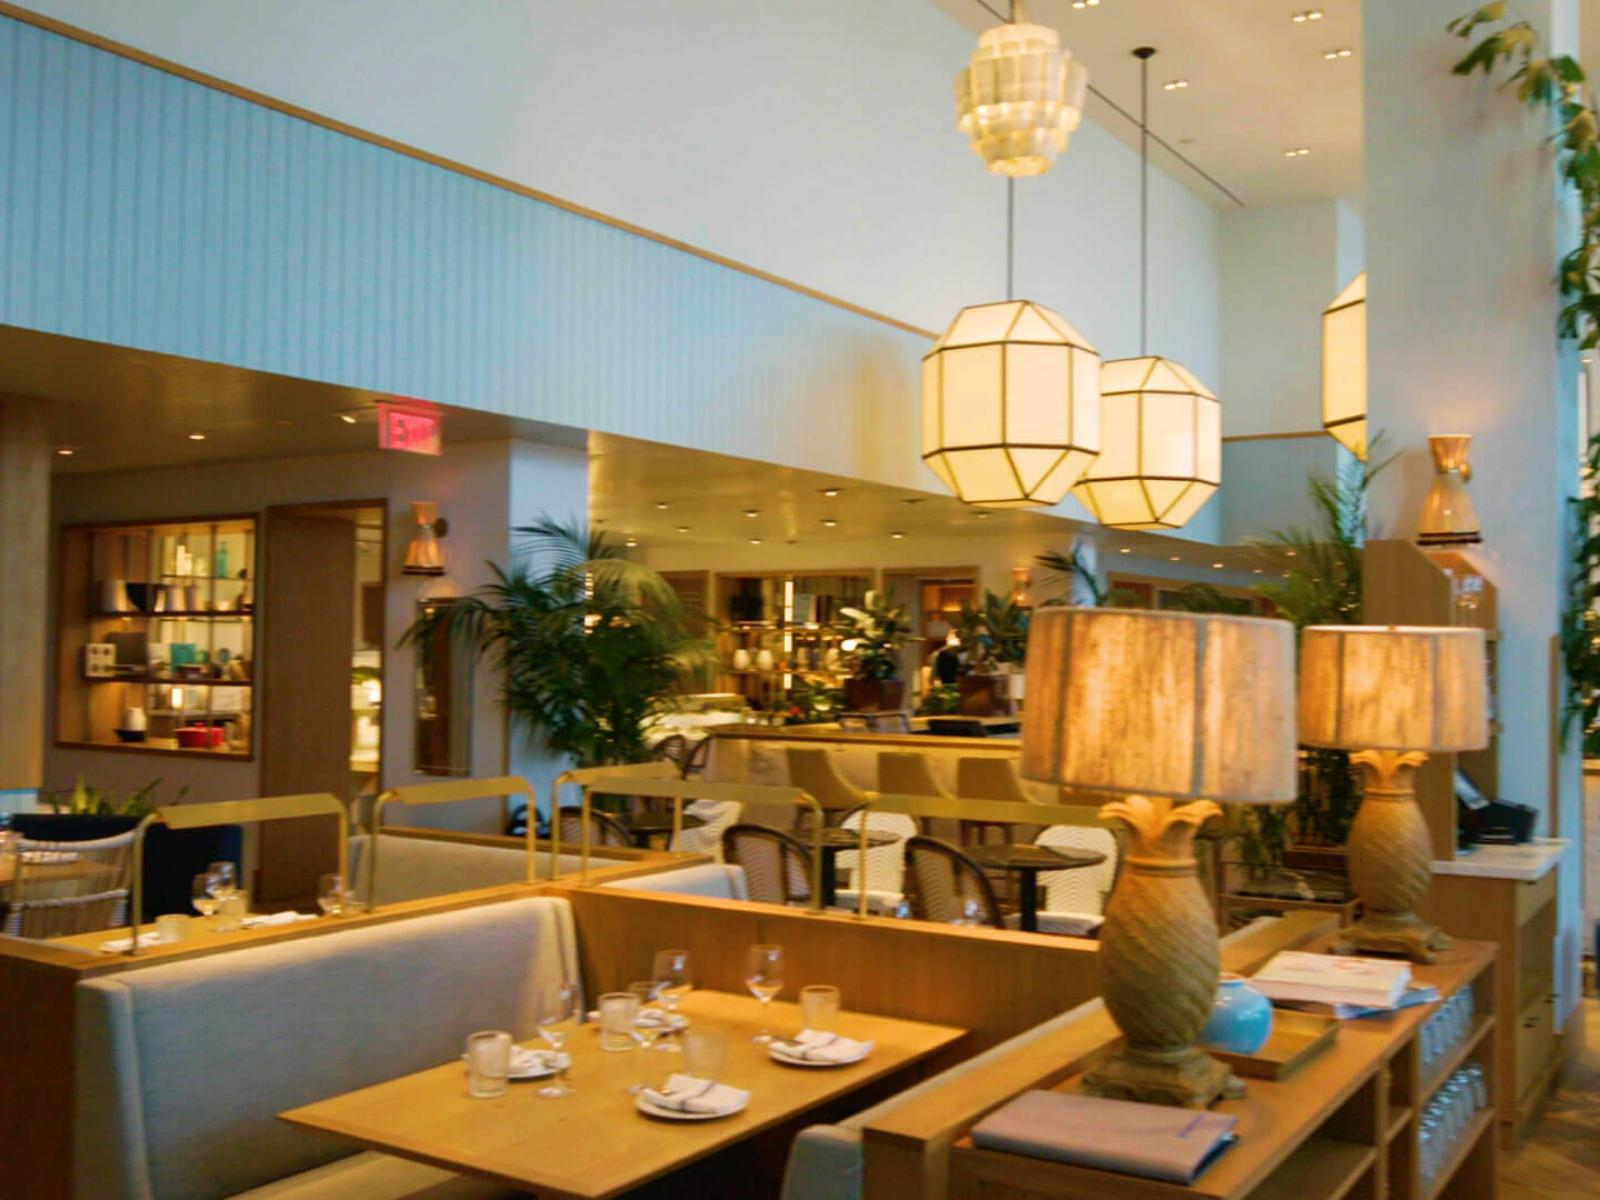 Overhead lamps provide mood lighting in hotel restaurant